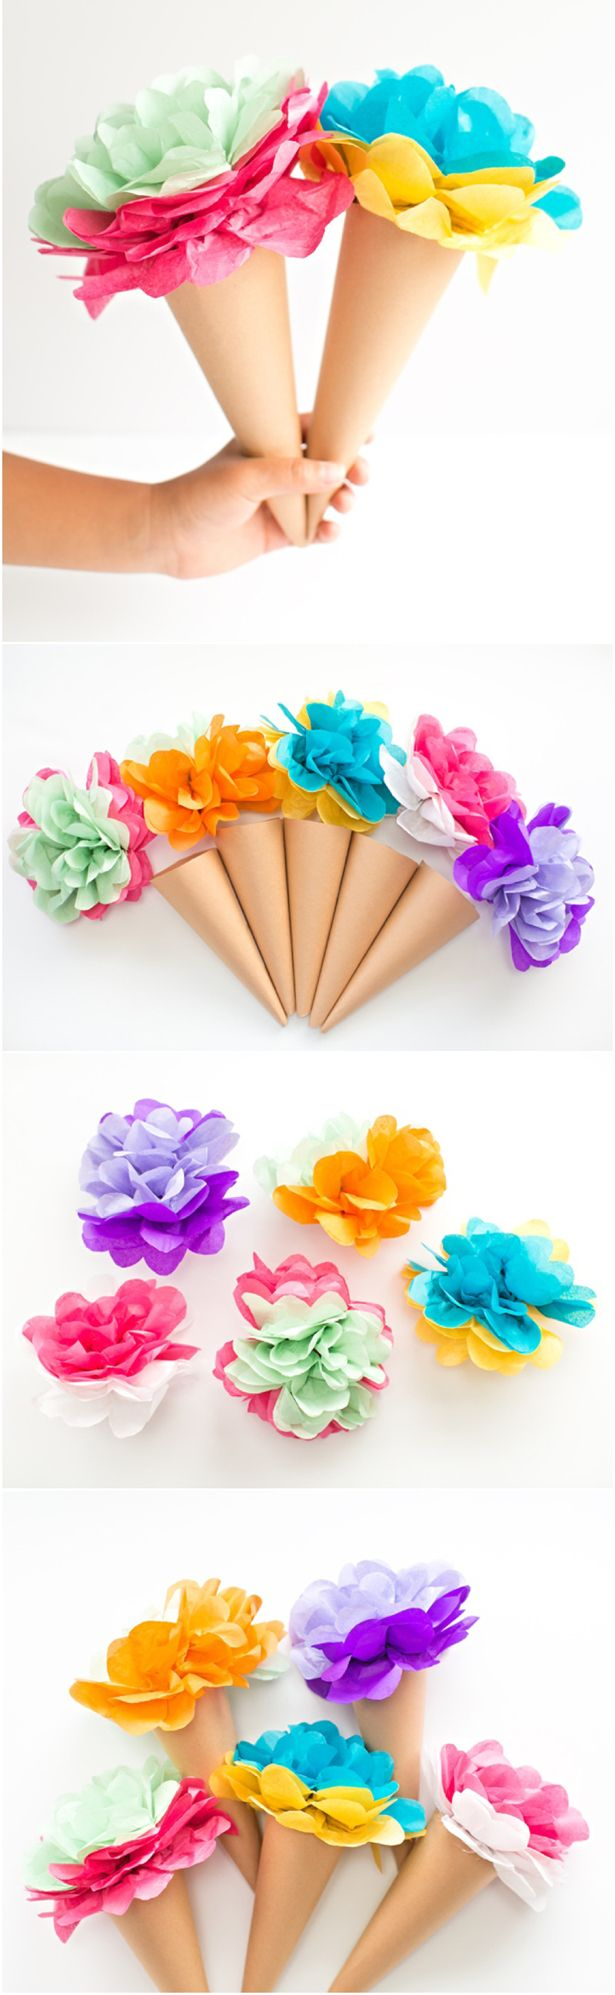 DIY Tissue Paper Ice Cream Cone Flowers Adorable Colorful Craft For Kid